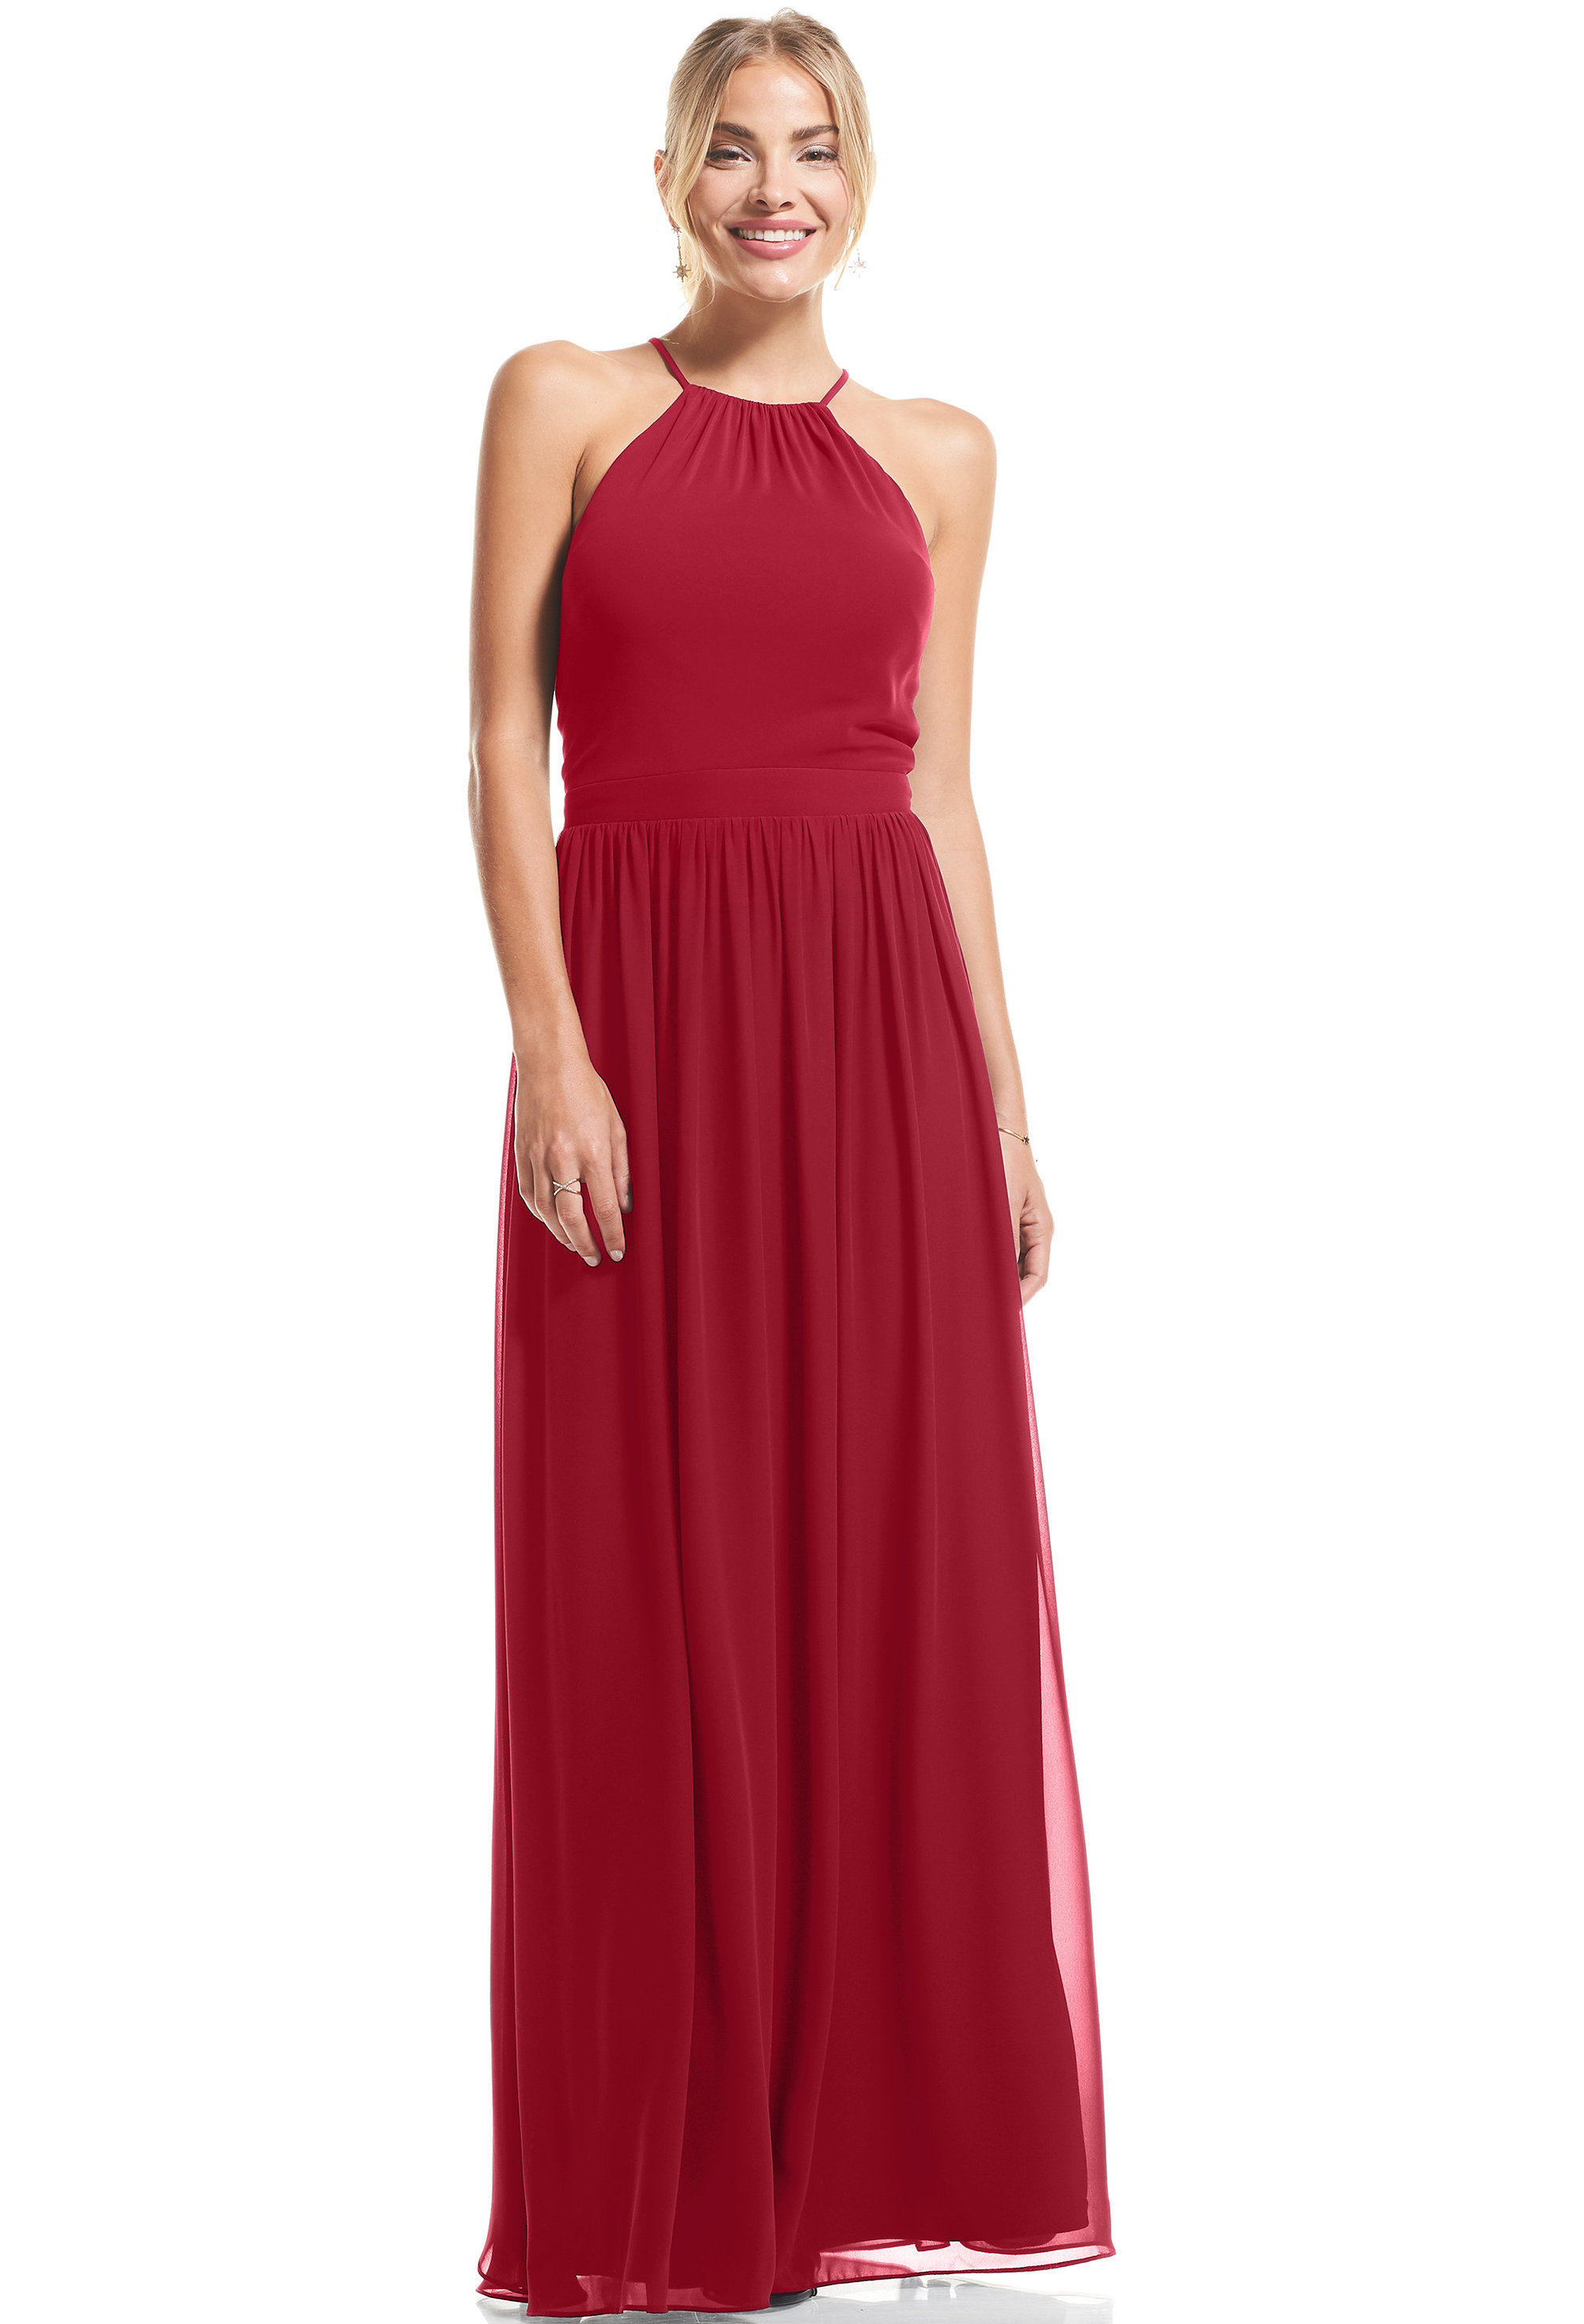 Bill Levkoff CRANBERRY Chiffon Halter A-Line gown, $89.00 Front